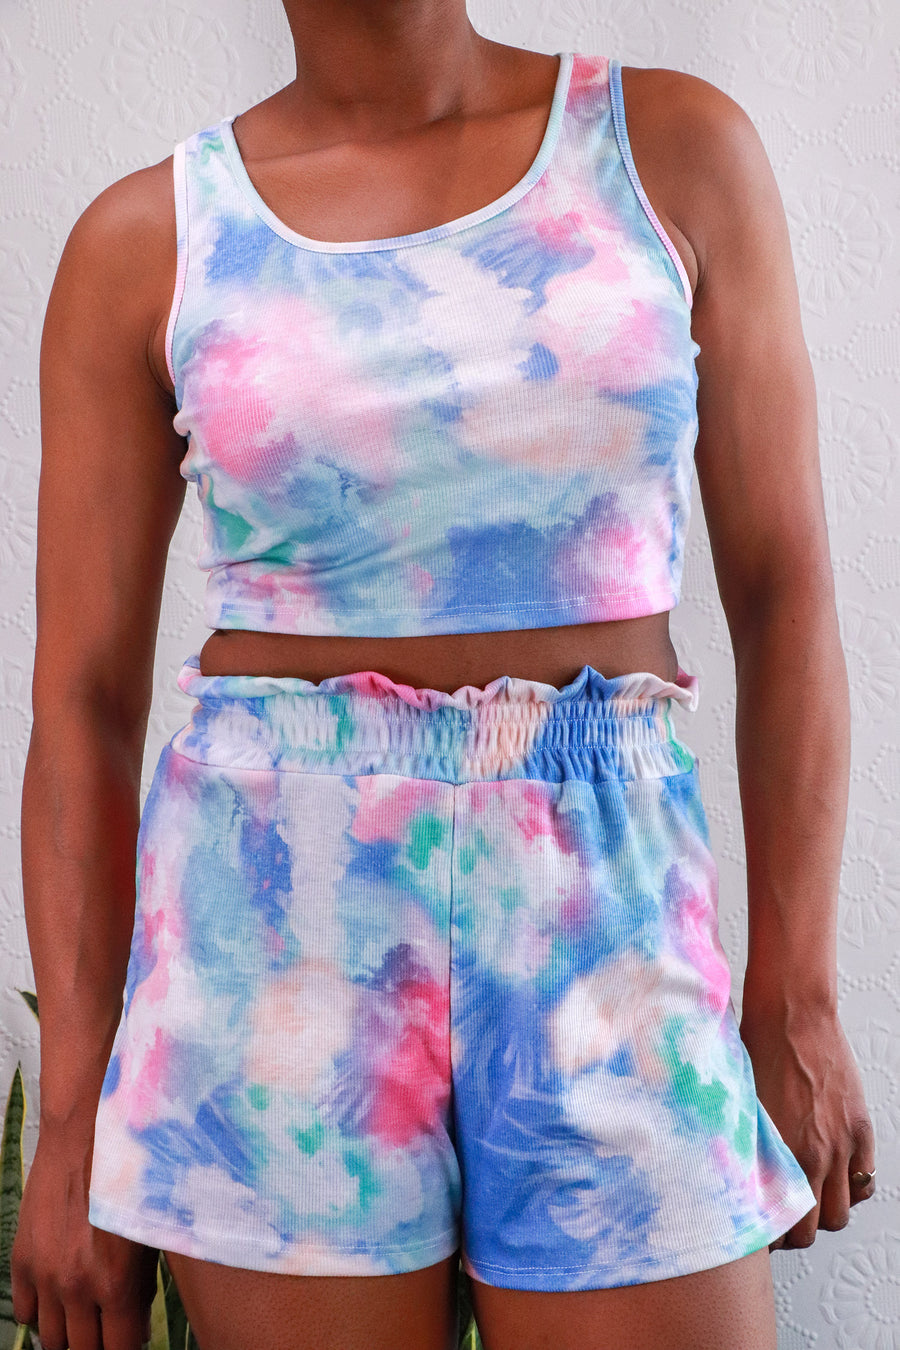 Nasty Gal - Get Behind The Groove Tie Dye Crop Top & Shorts Set - S